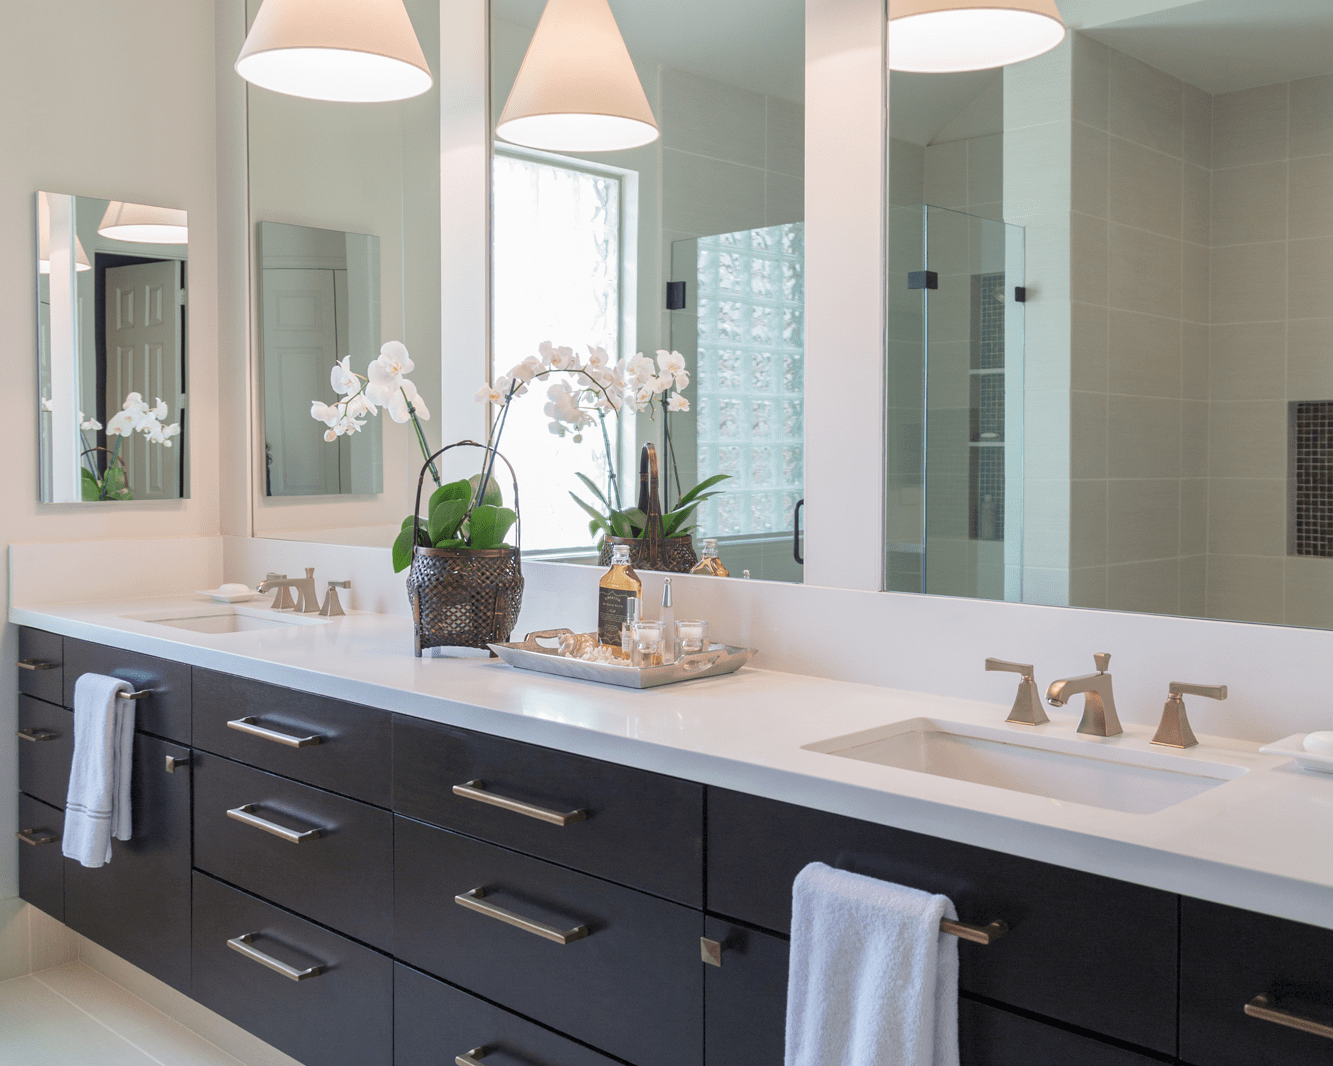 Remodel Design Before After A Master Bathroom Remodel Surprises Everyone With